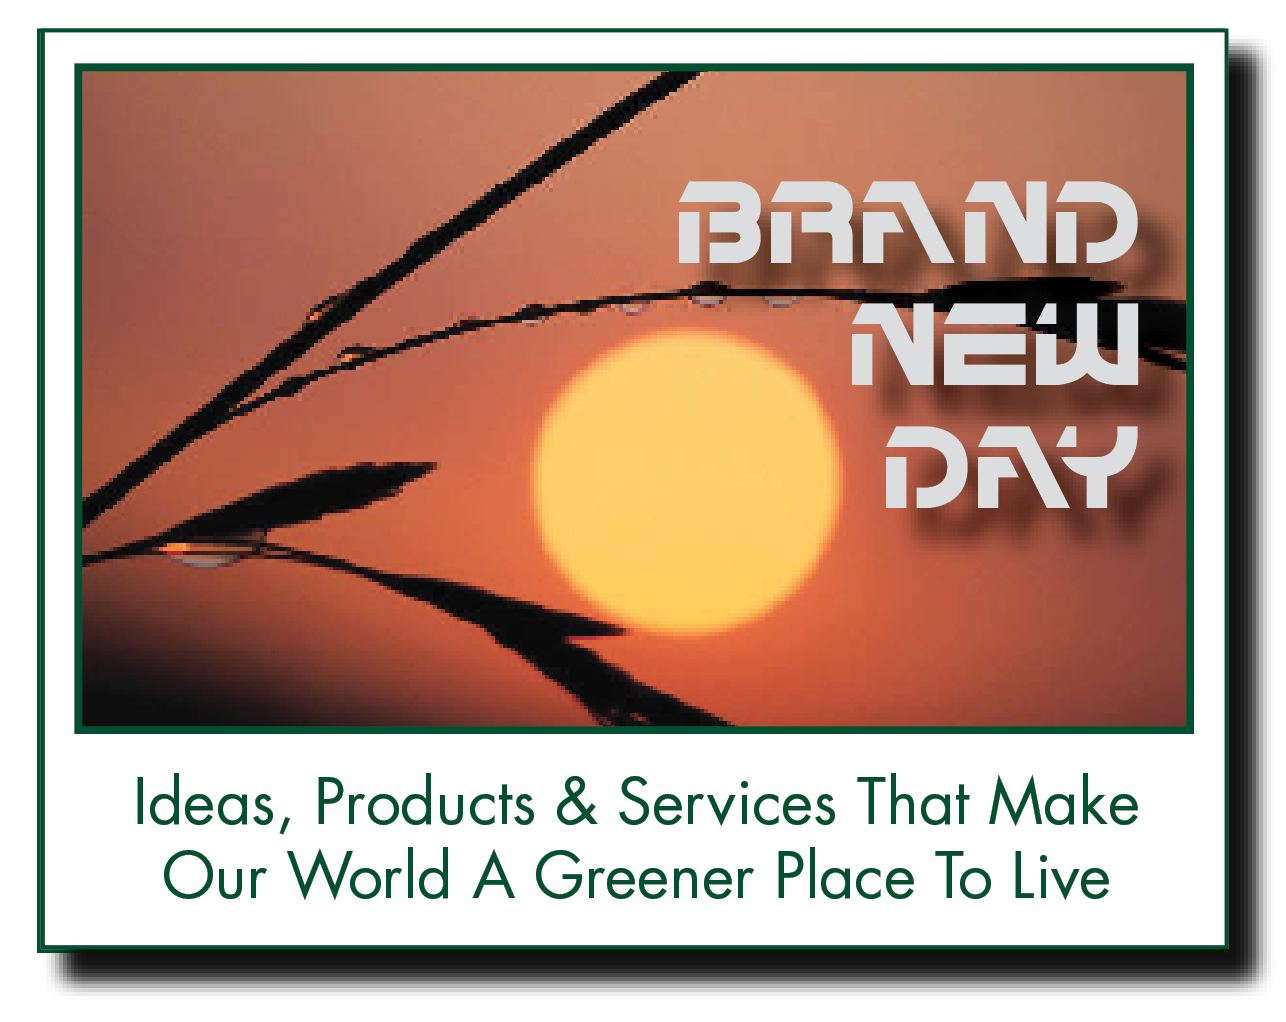 BRAND TTT ny  Ideas, Products & Services That Make Our World A Greener Place To Live